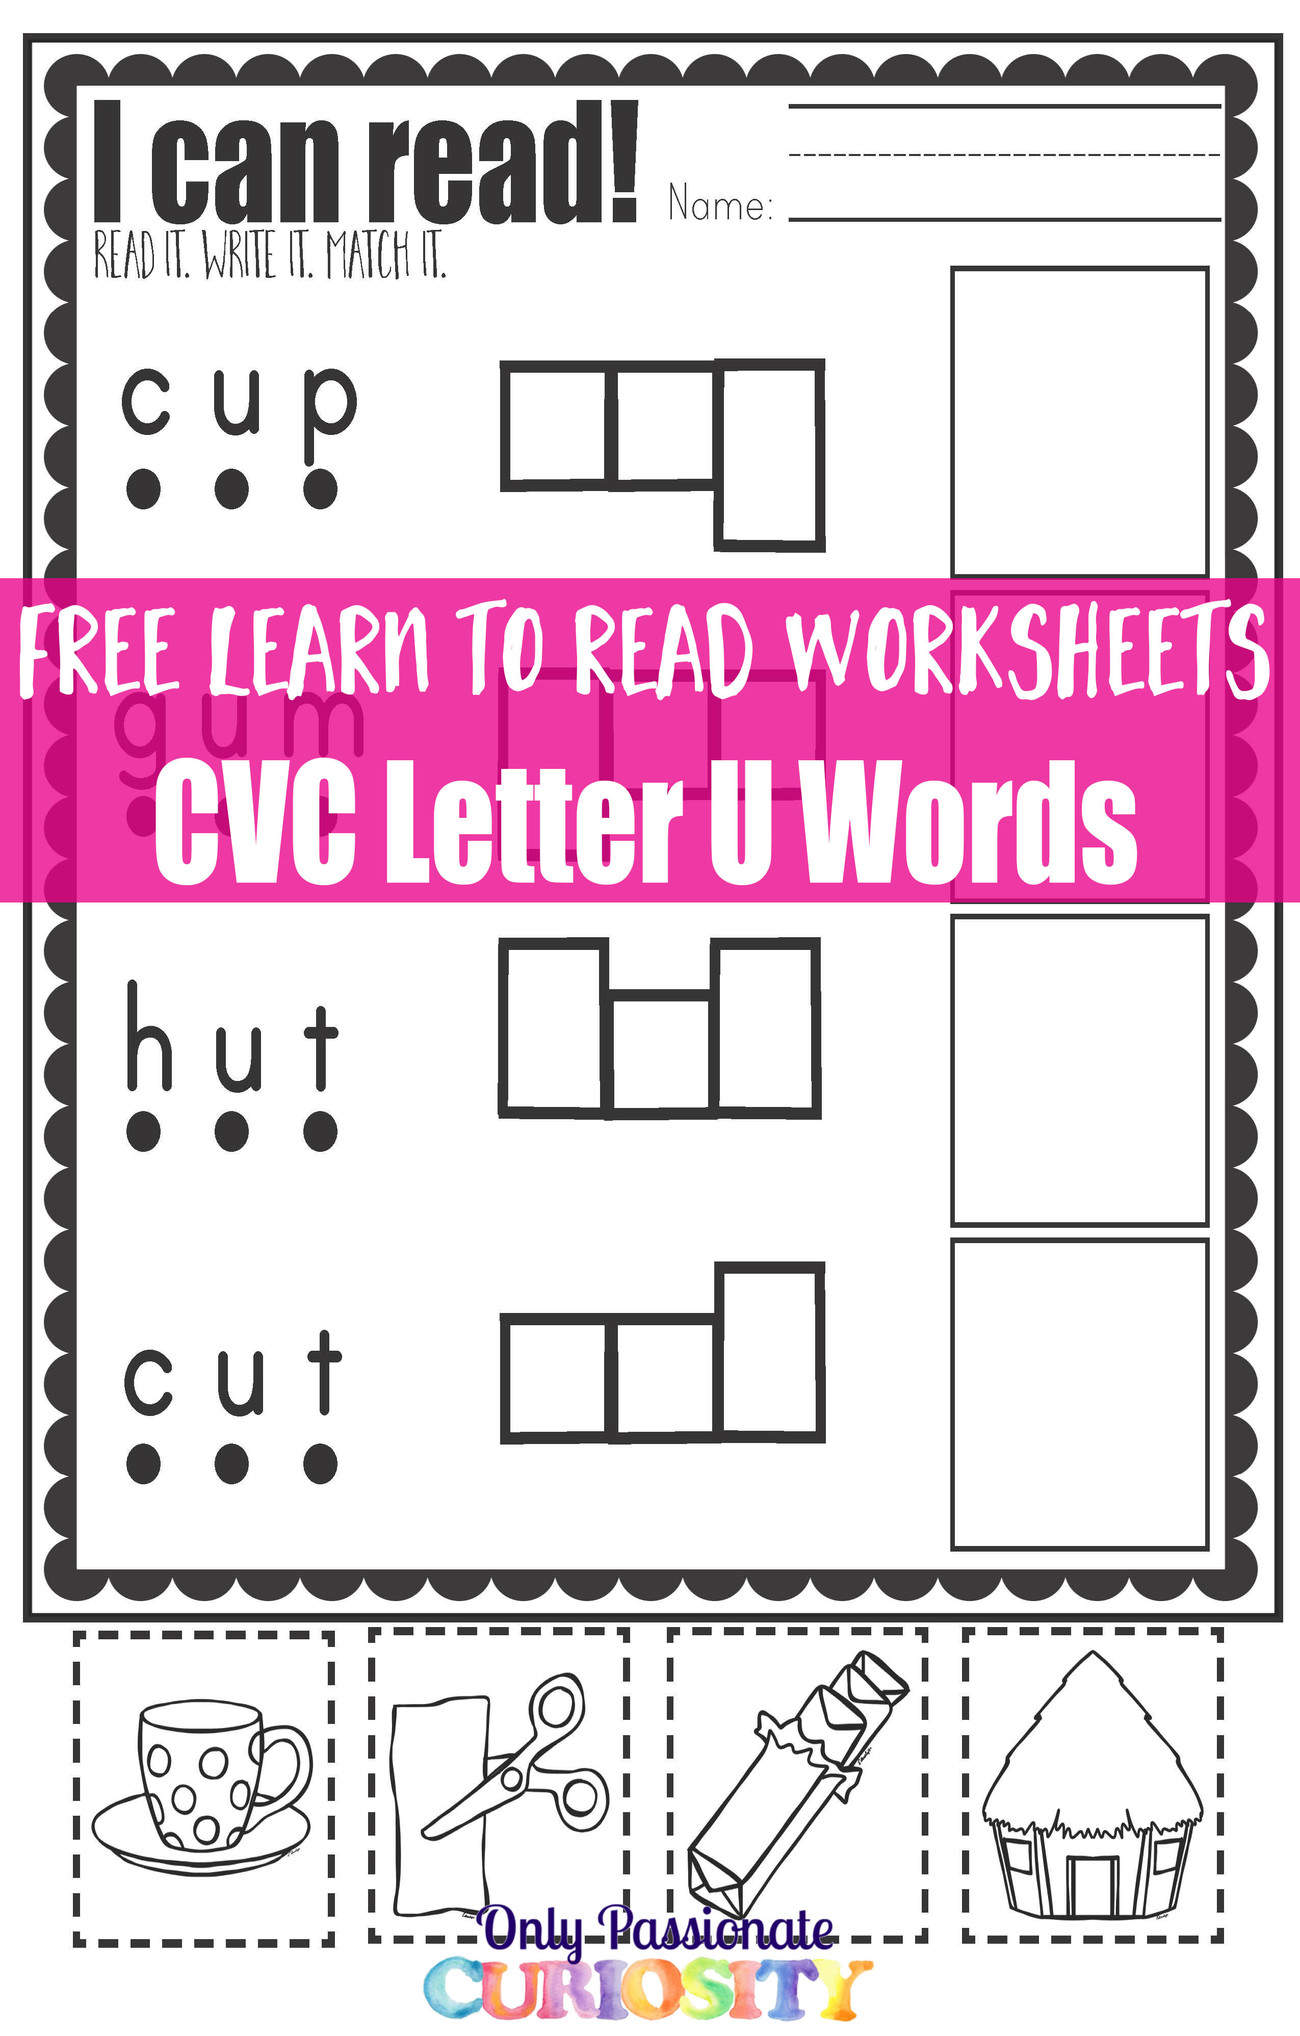 Learn to Read Worksheets Practice with CVC U Words Only – Learn to Read Worksheets